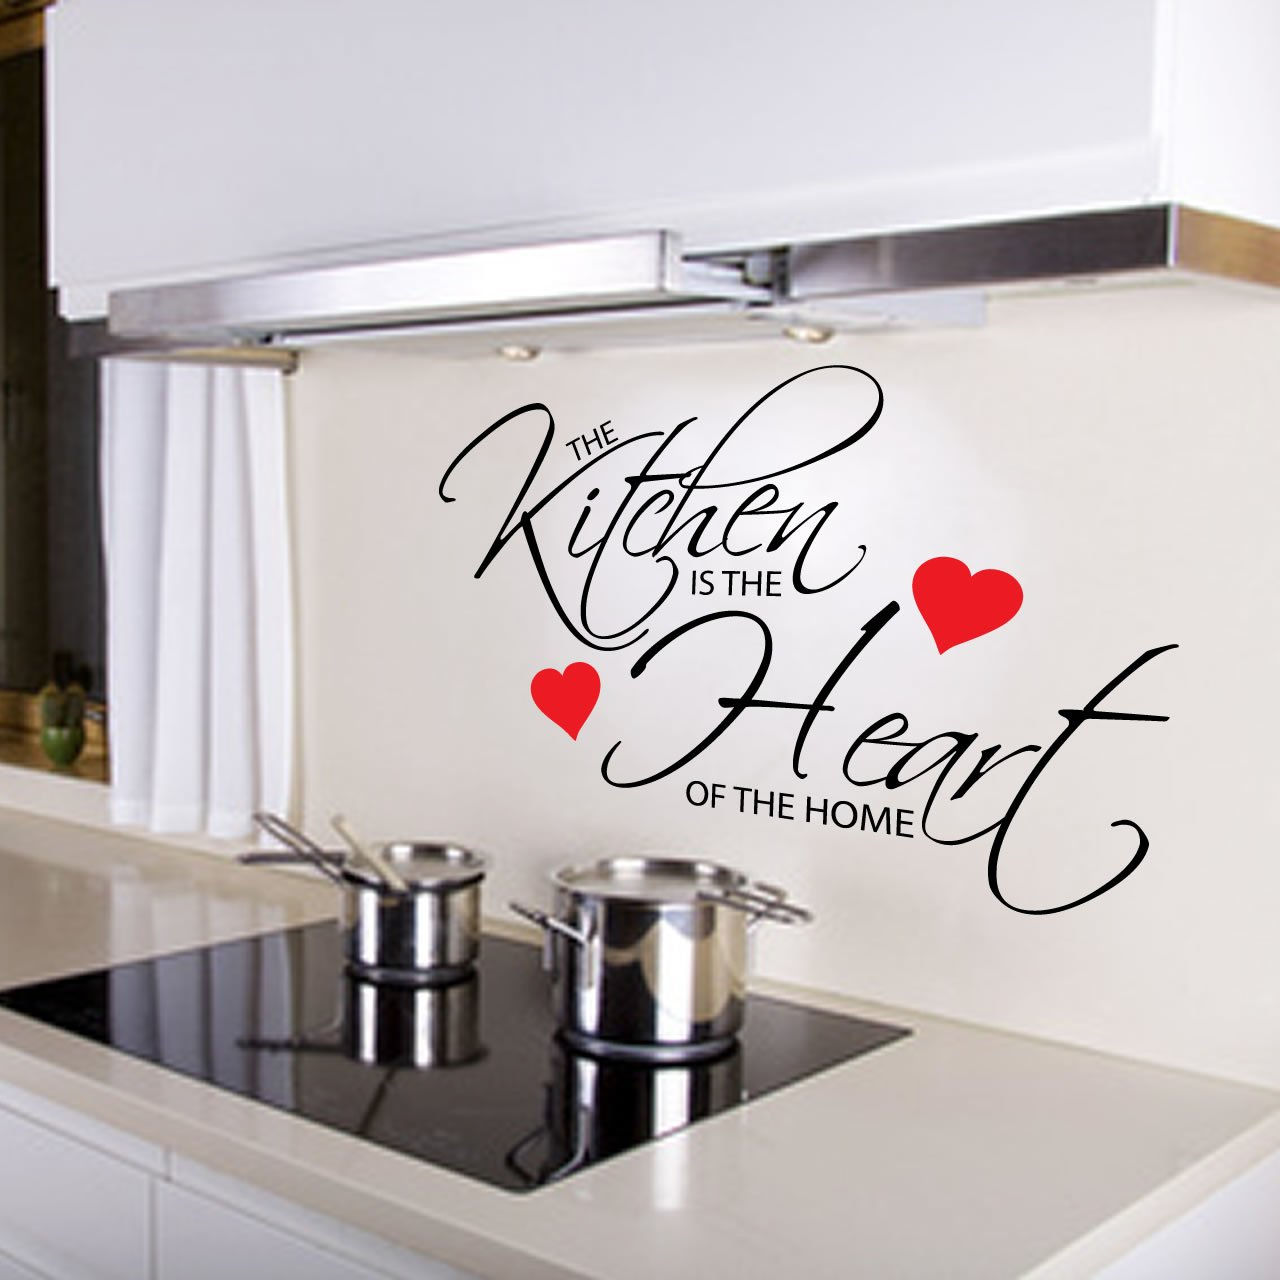 kitchen is the heart of the home quote wall sticker - world of